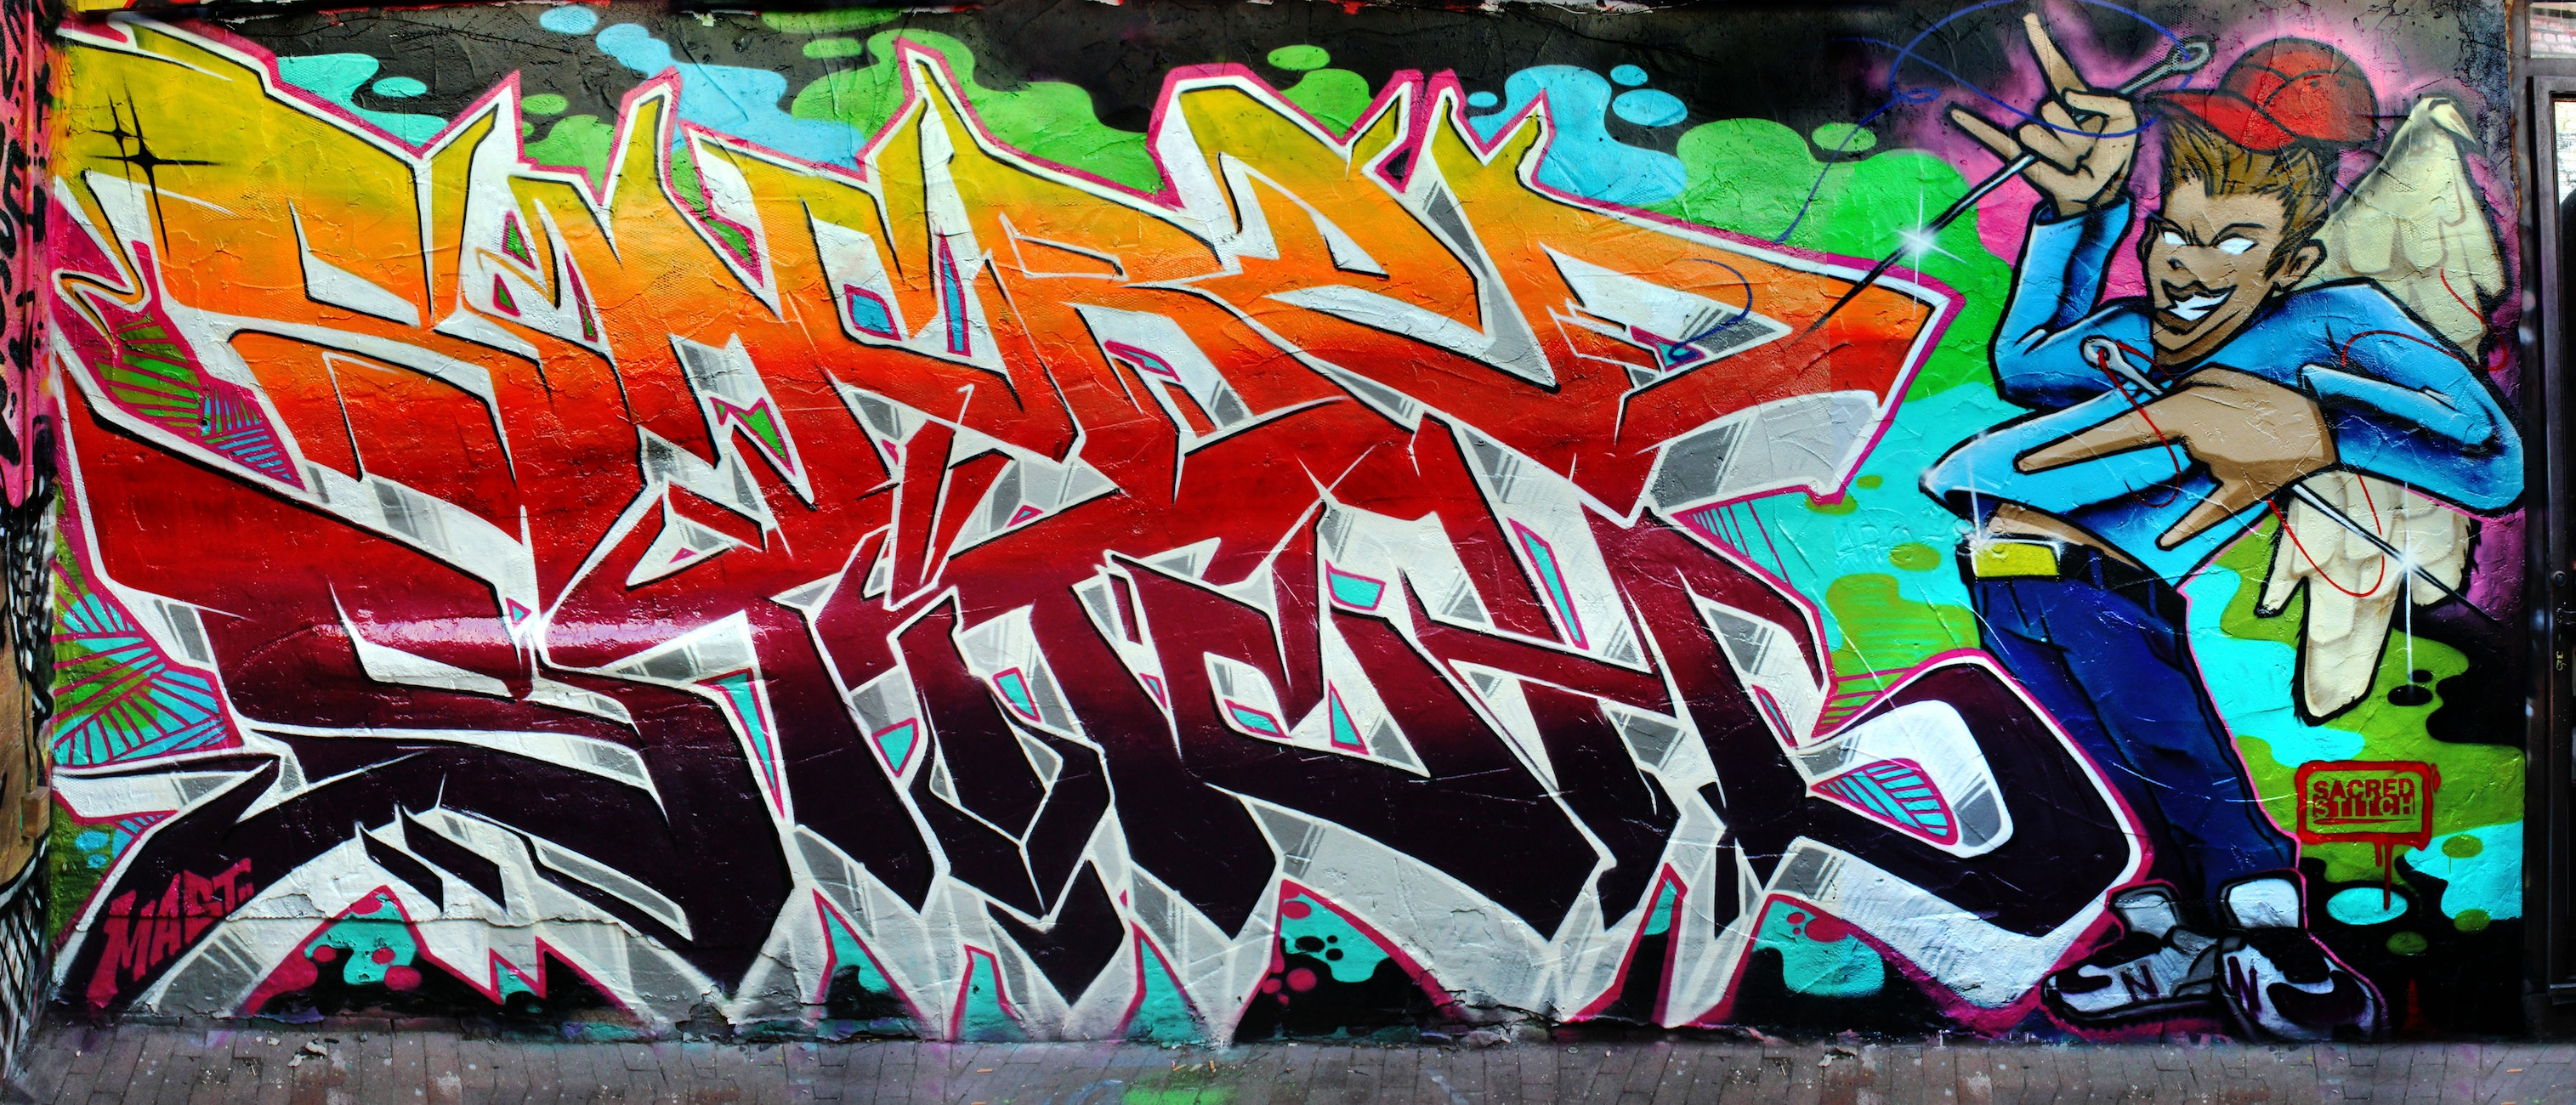 Graffiti Painting | Professional Artistic Wall Painters | Paintzen